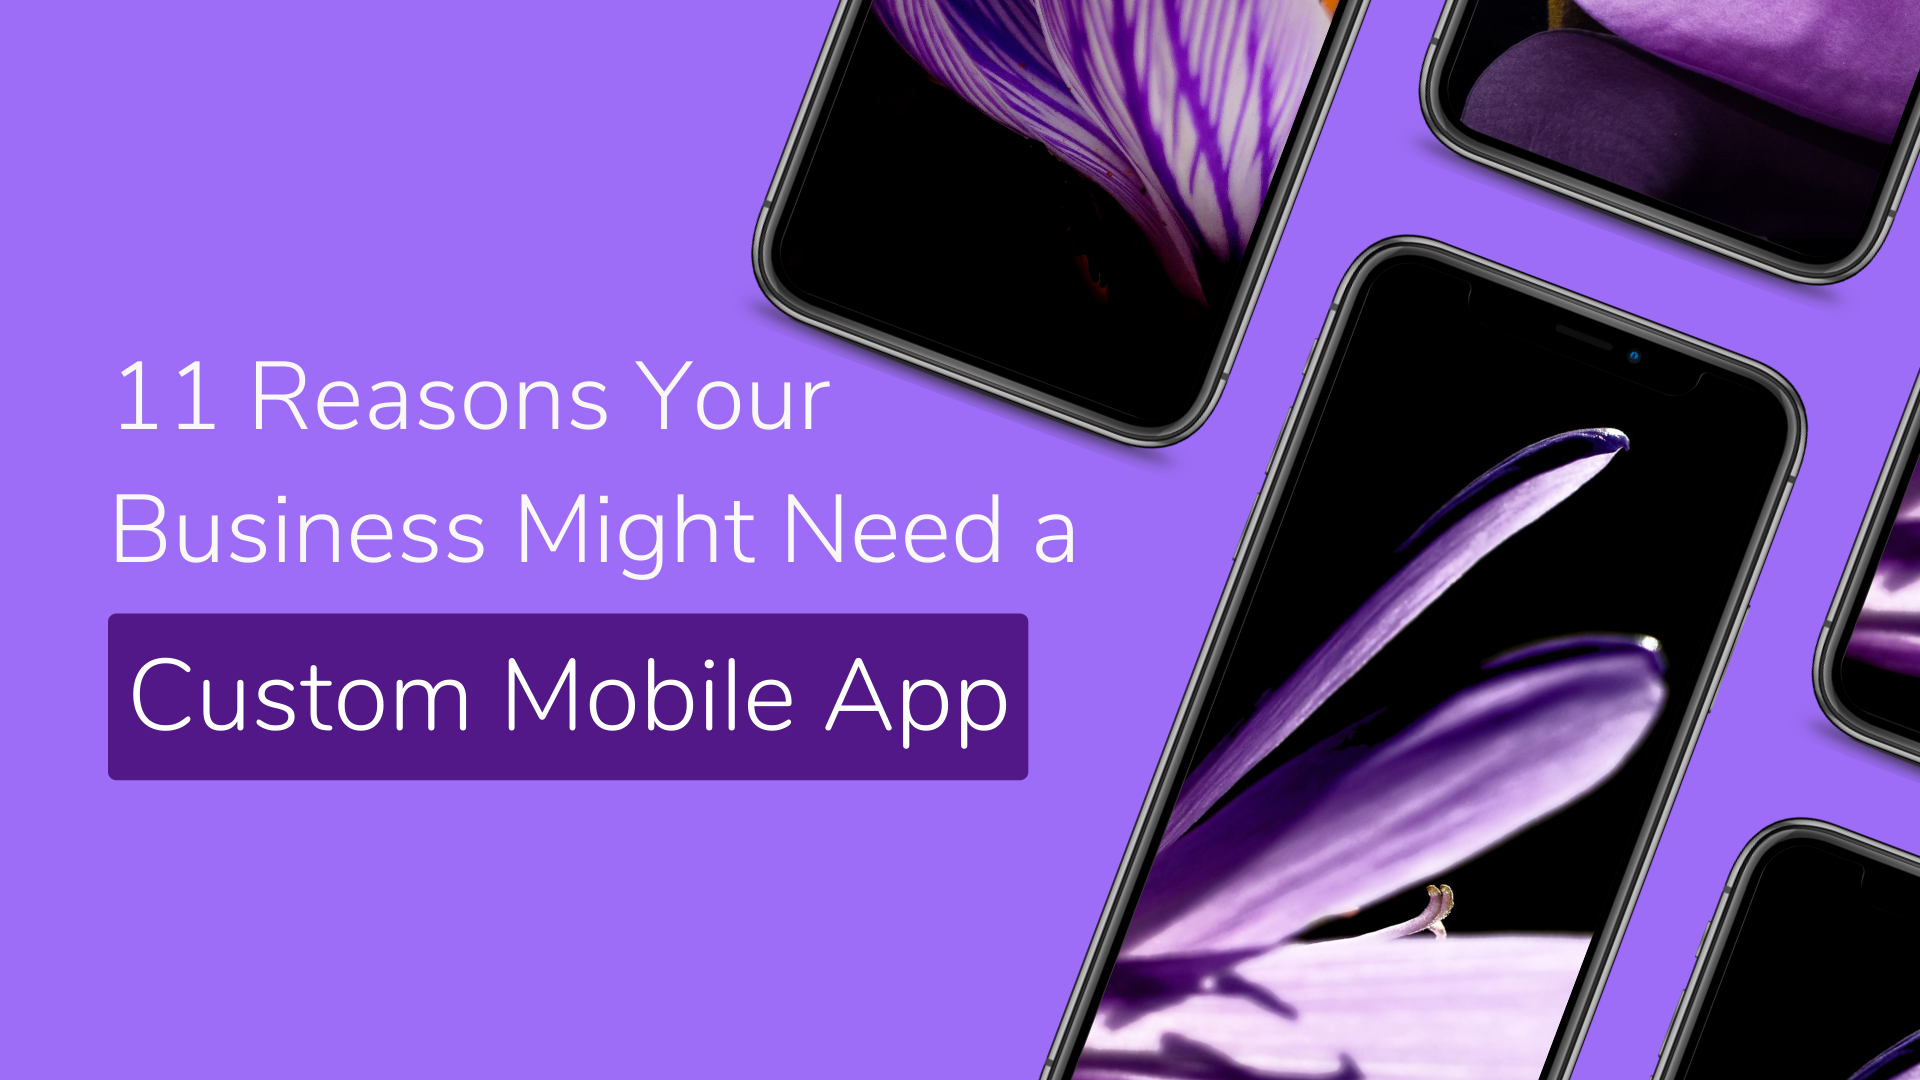 11 Reasons Your Business Might Need a Custom Mobile App